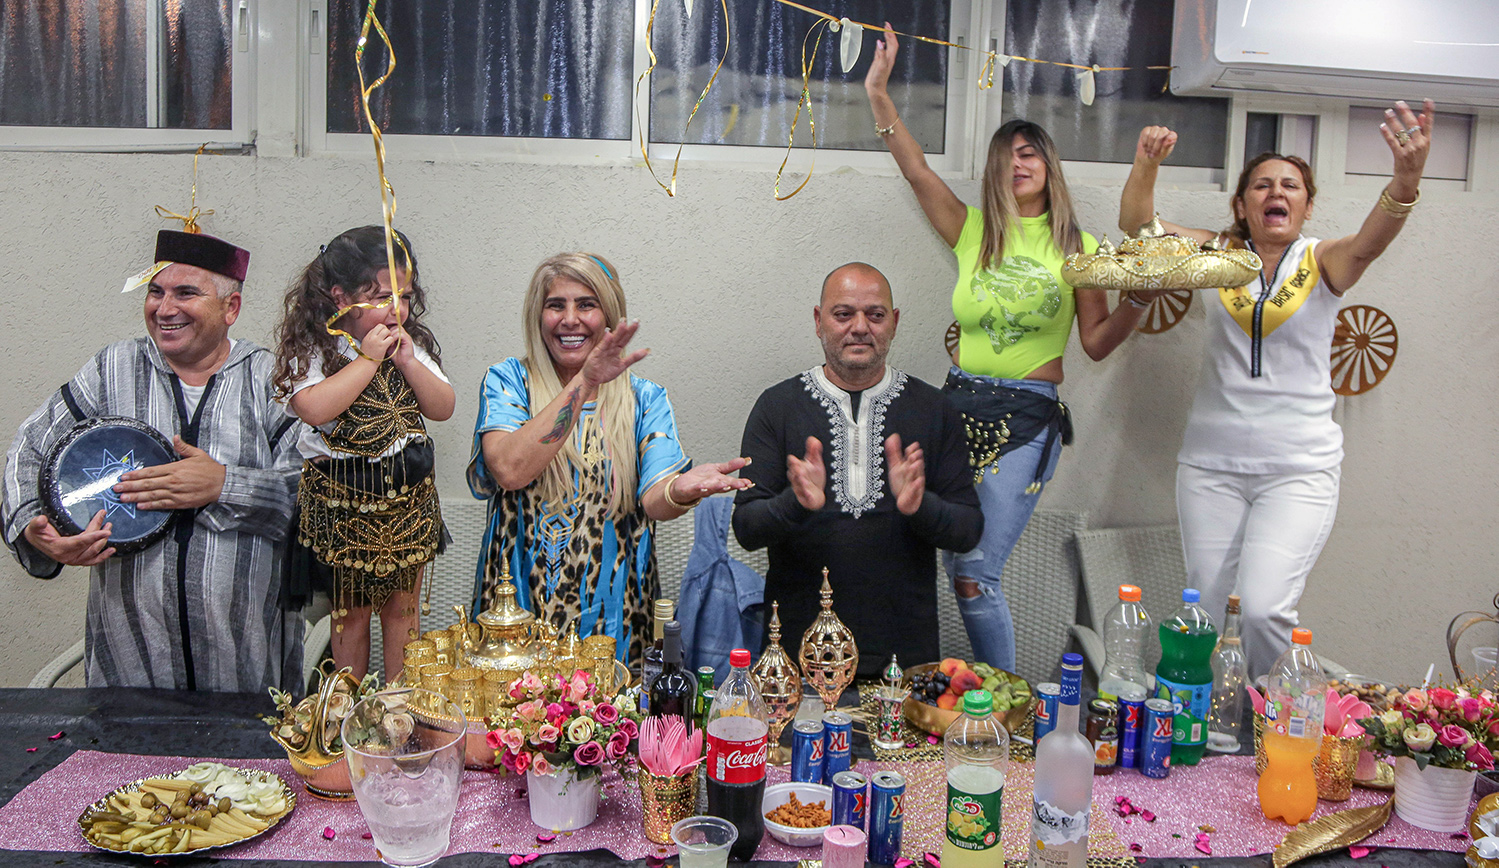 A family celebrating the North African Jewish holiday of Mimouna in the southern Israeli city of Ashkelon on April 15, 2020. Edi Israel/Flash90.